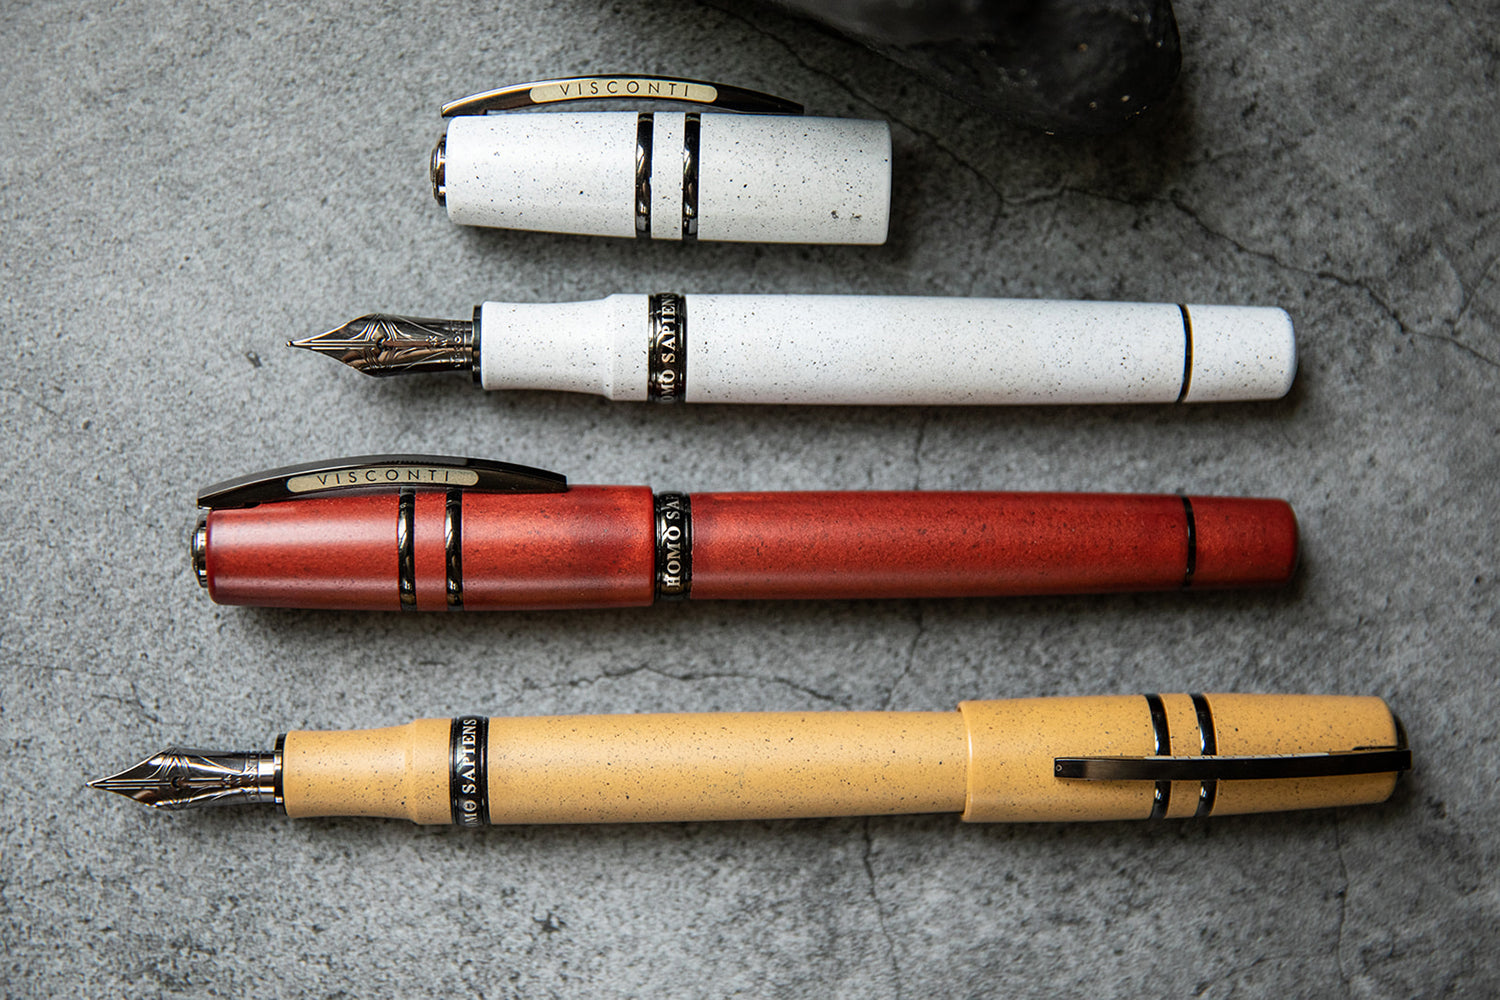 Visconti Homo Sapiens Lava Color Fountain Pen - Blizzard